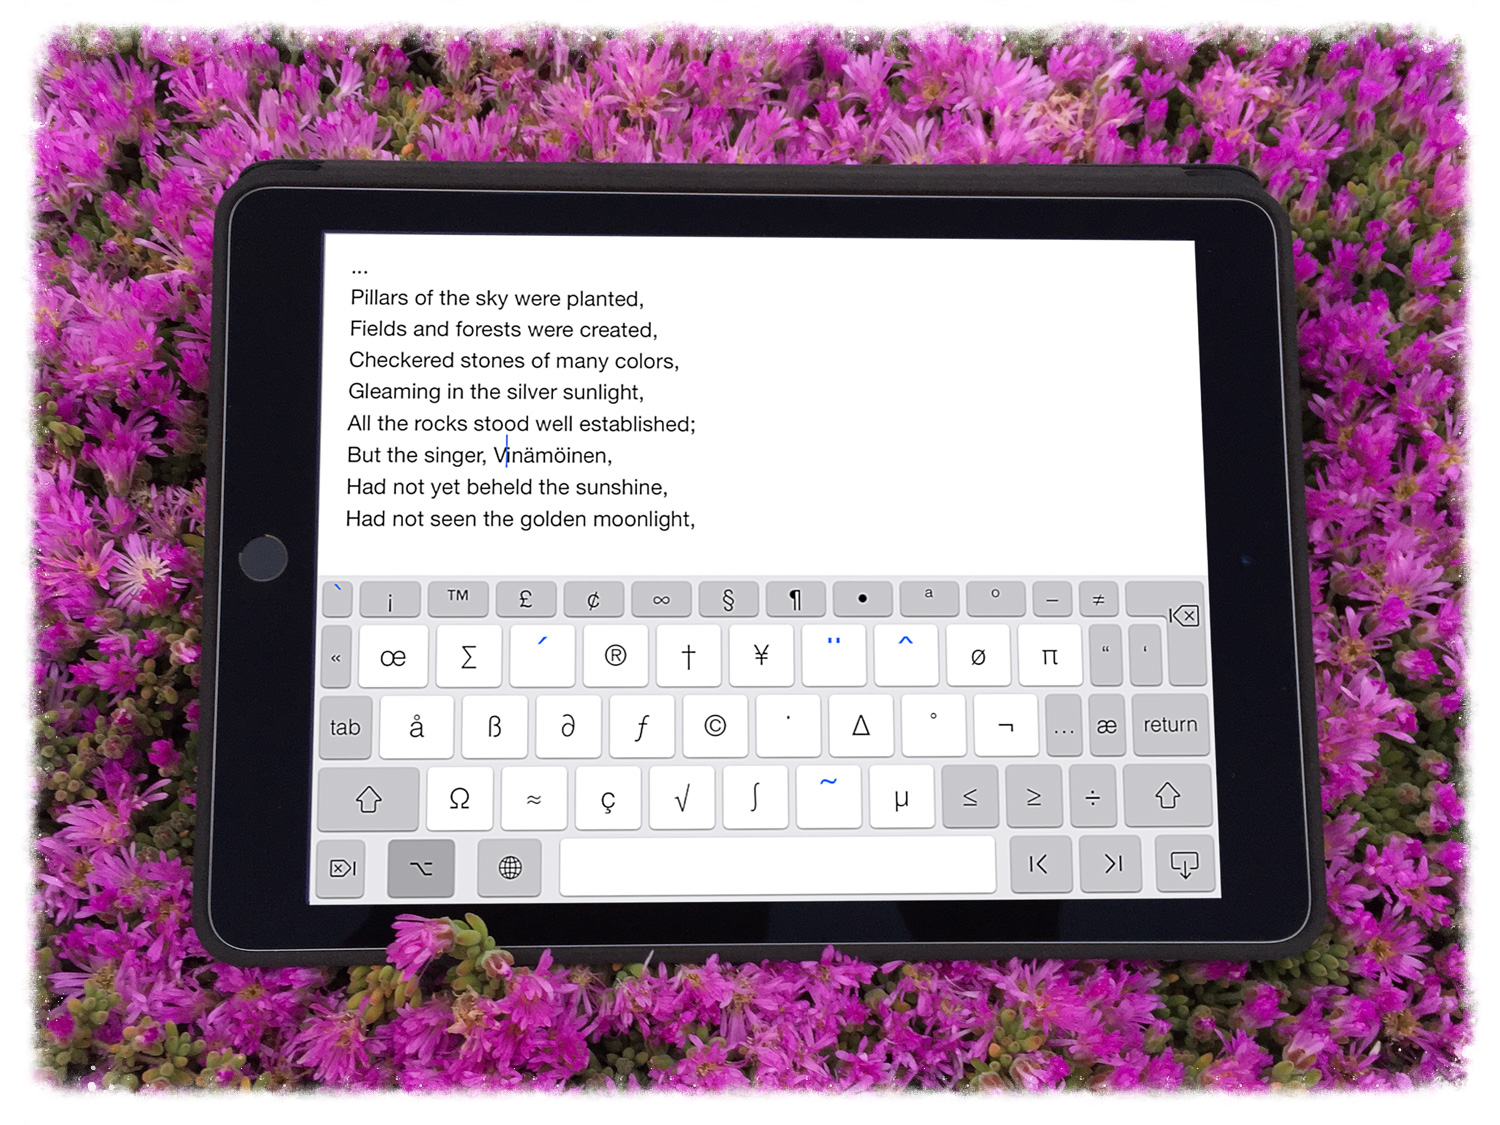 PadKeys iPad / iPhone Keyboard is the best keyboard app for editors, professionals and students who need a seamless full keyboard in order to increase their productivity and speed.